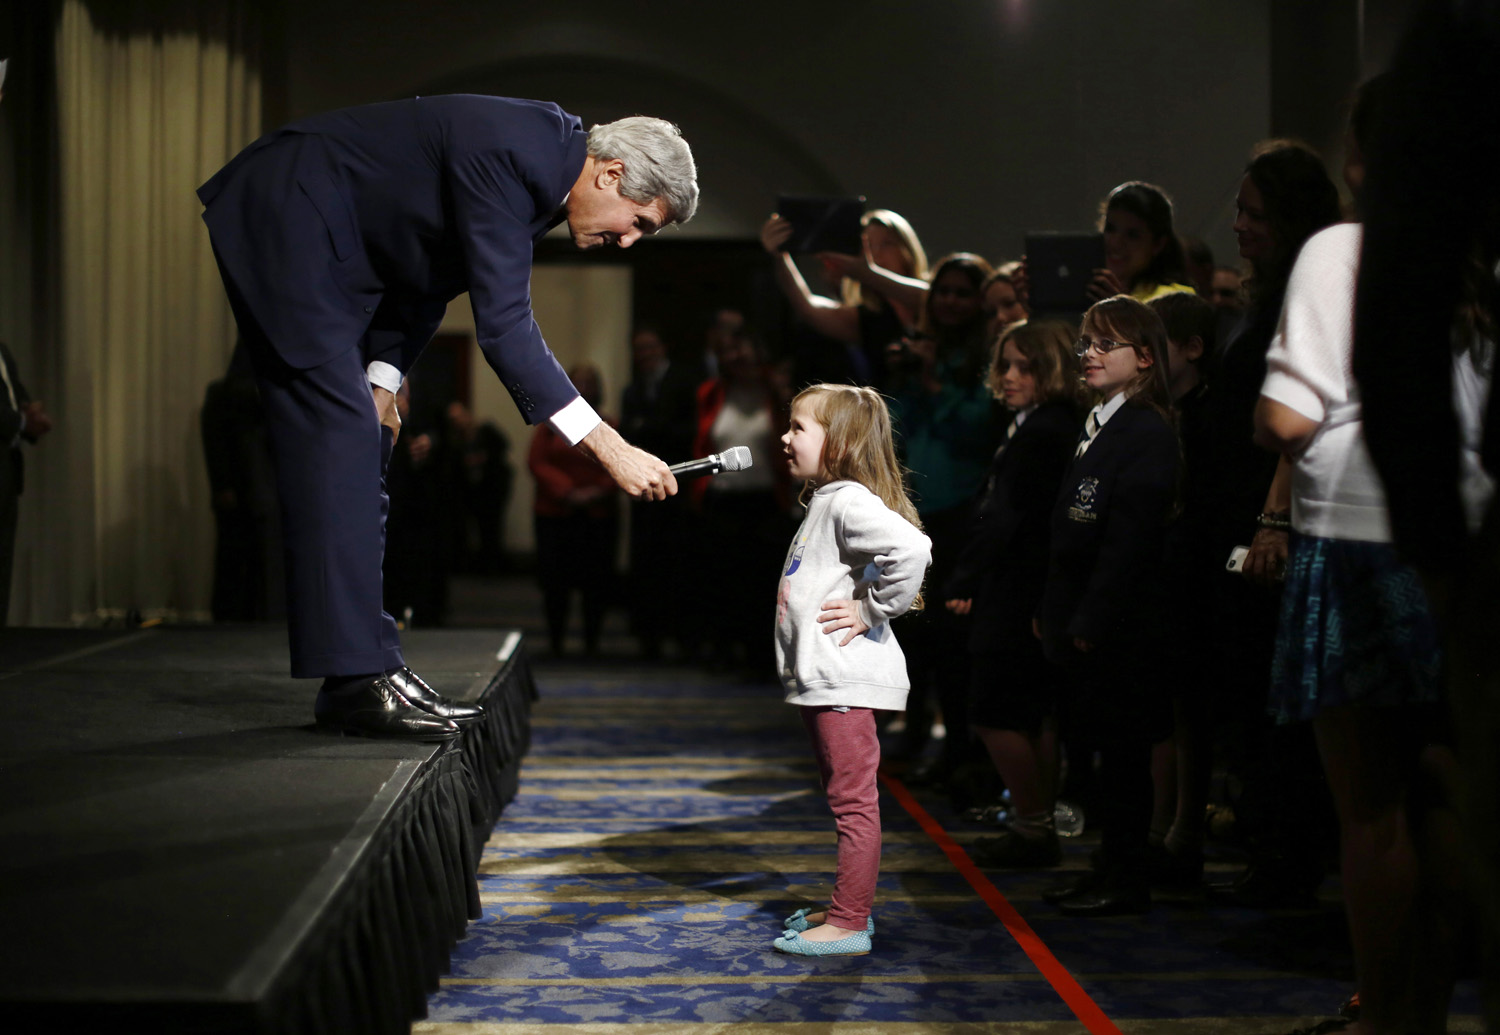 U.S. Secretary of State John Kerry speaks with five-year-old Dara Edwards, the daughter of an American staffer at the U.S. Consulate in Sydney, as he meets embassy and consular staff in Sydney on August 12, 2014.